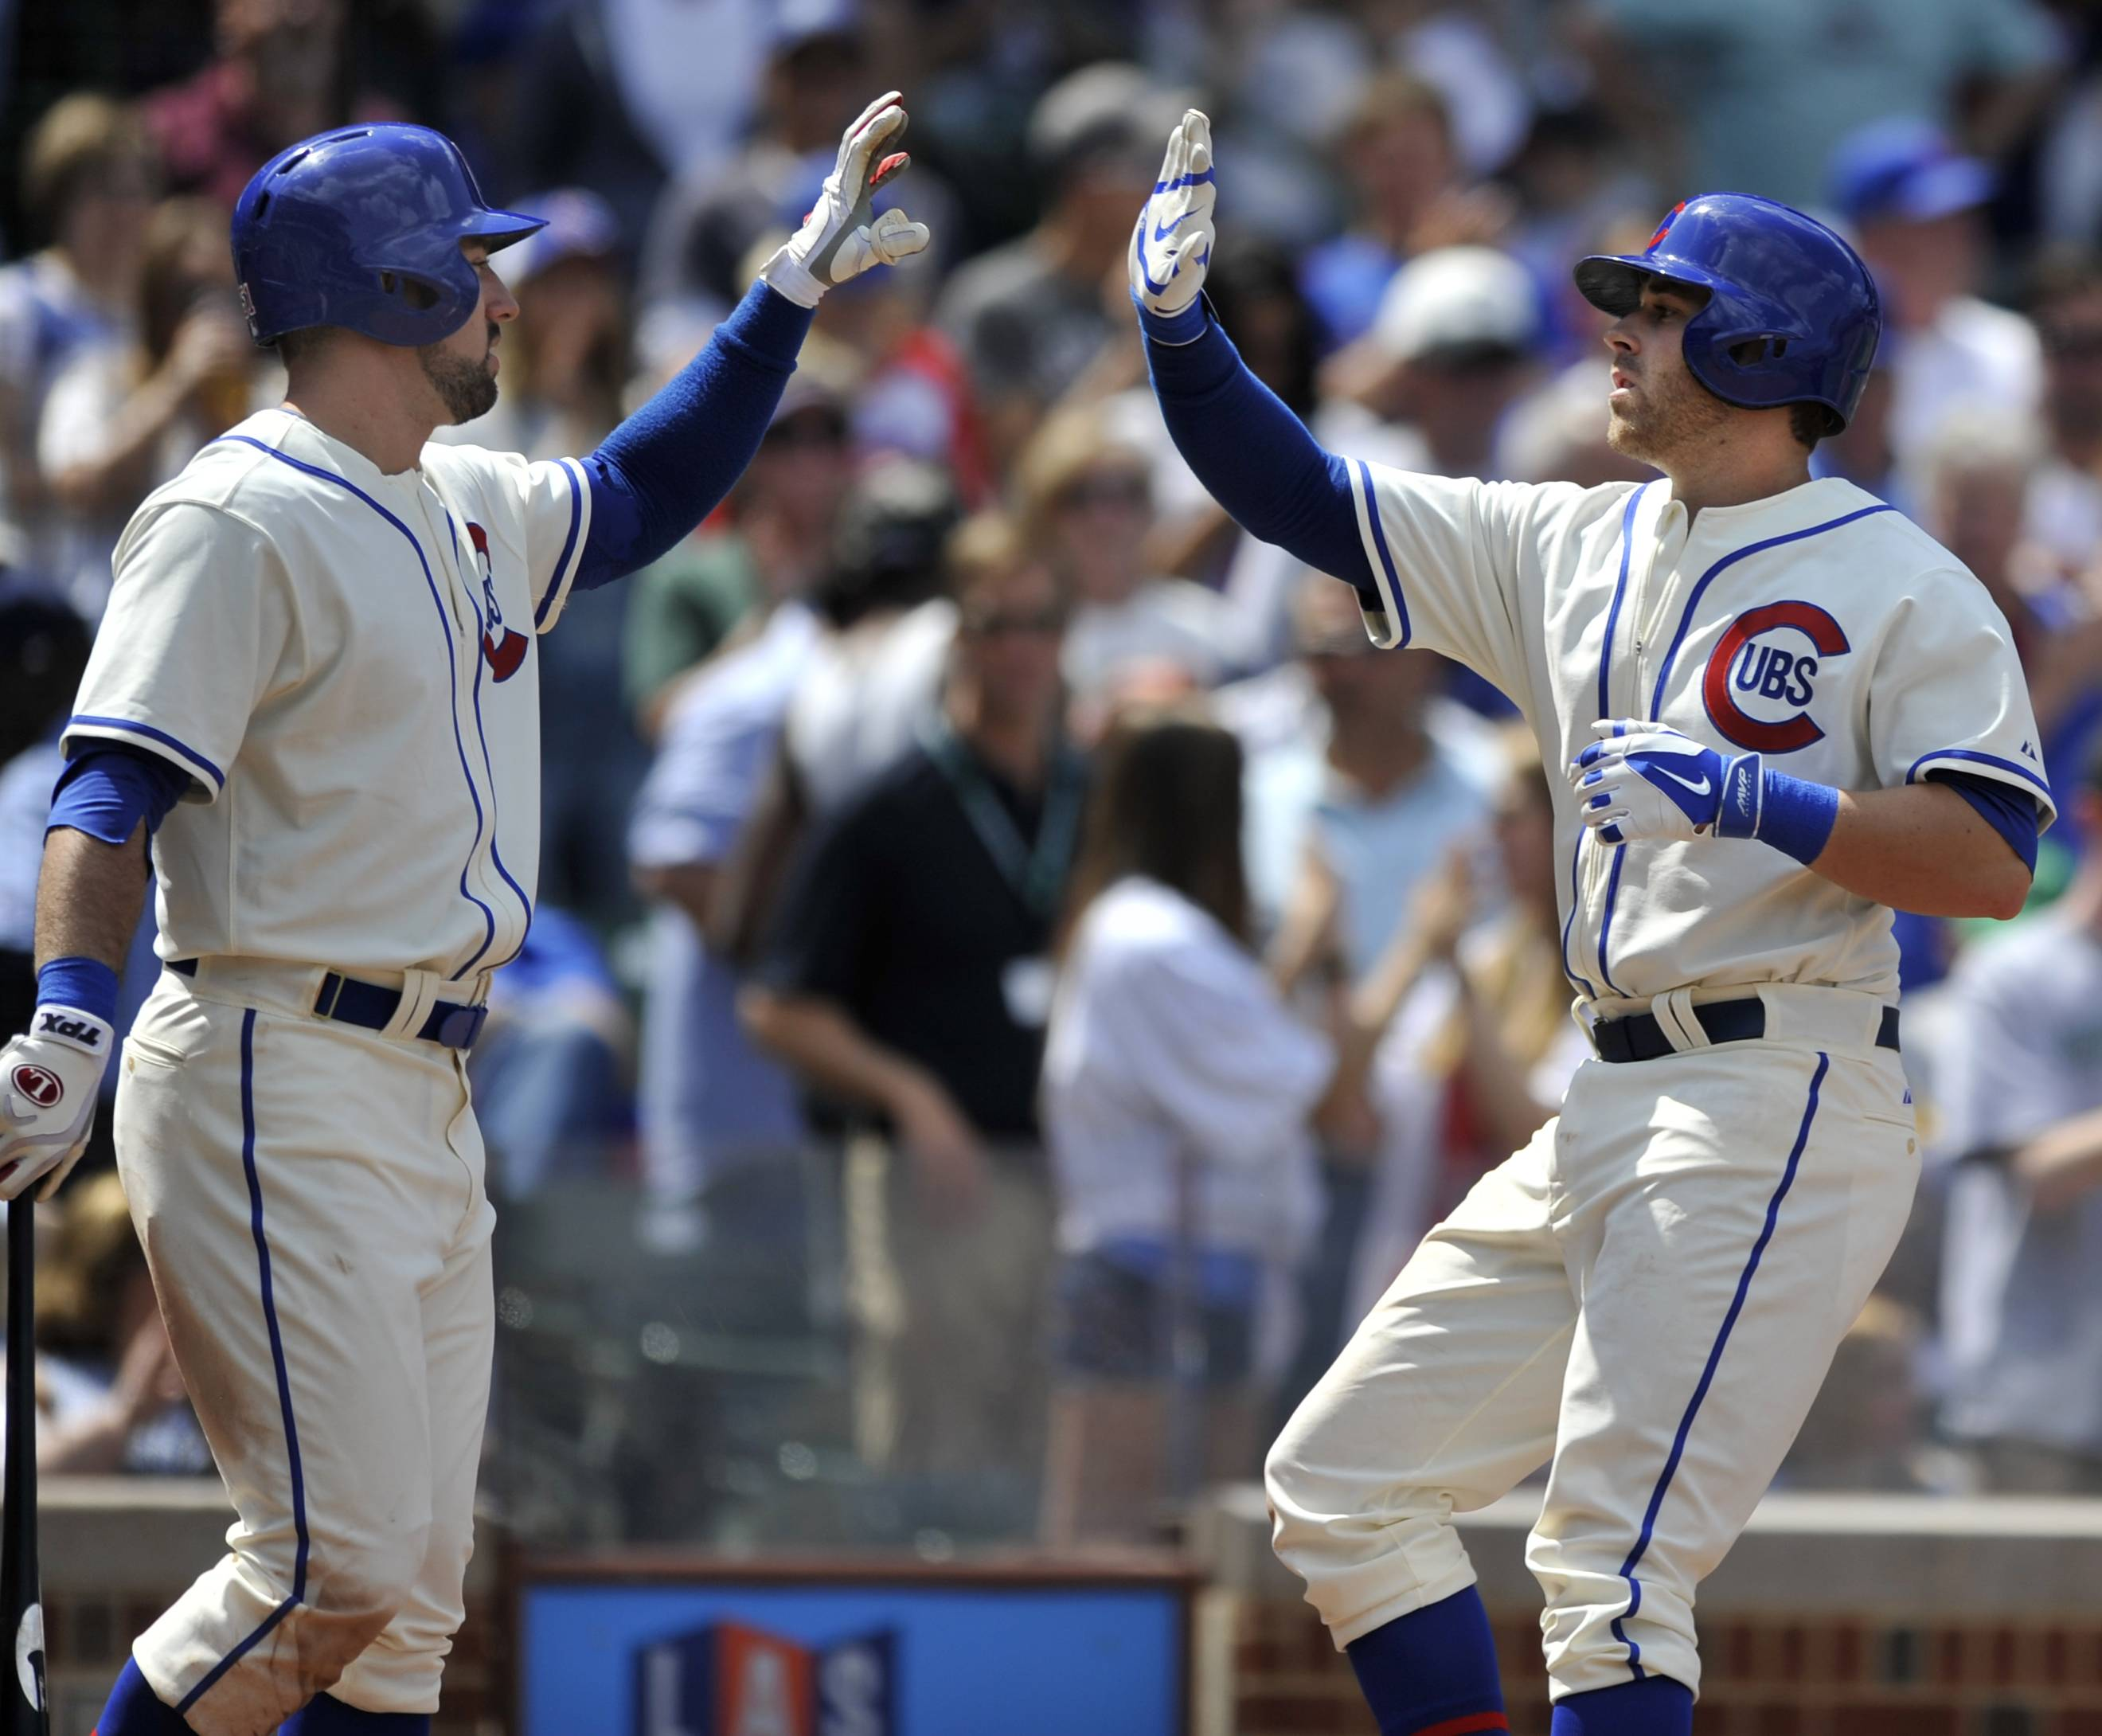 The Cubs' MIke Olt, right, celebrates with teammate Ryan Kalish after hitting a solo home run against the Brewers in the fourth inning Sunday at Wrigley Field.